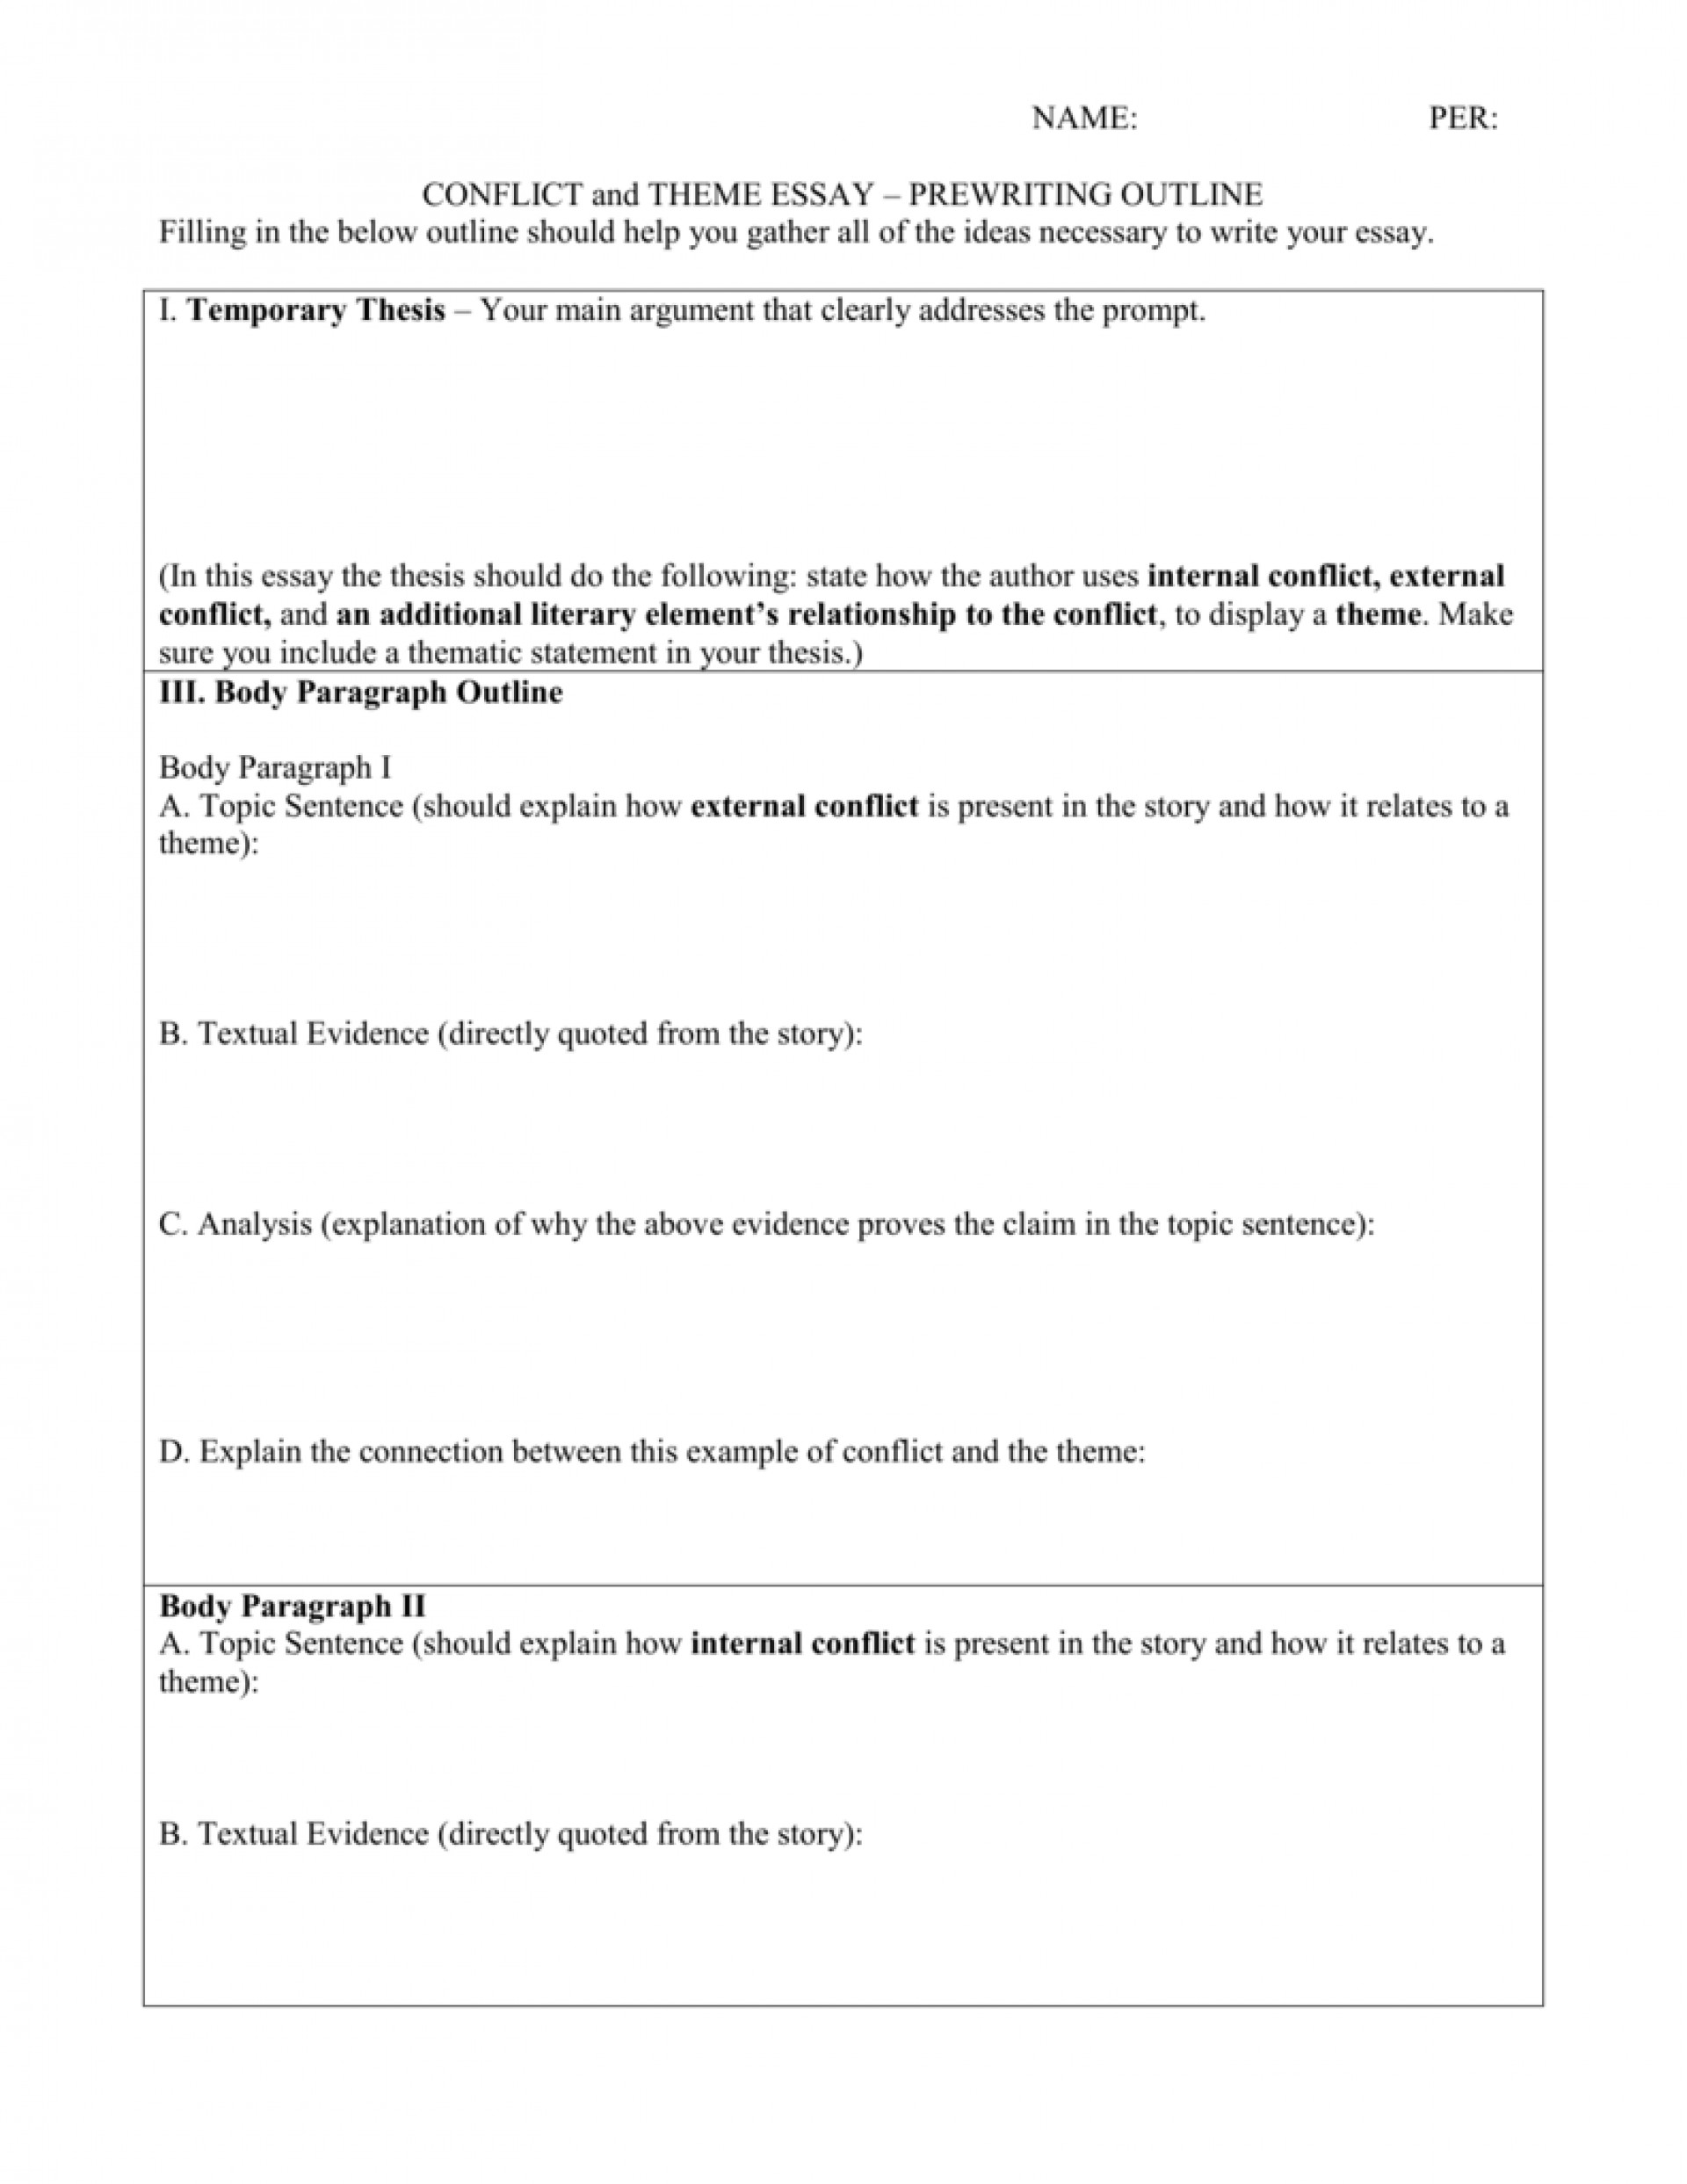 008 Outline Essay 008002500 1 Fascinating About Immigration Tok Structure Definition 1920